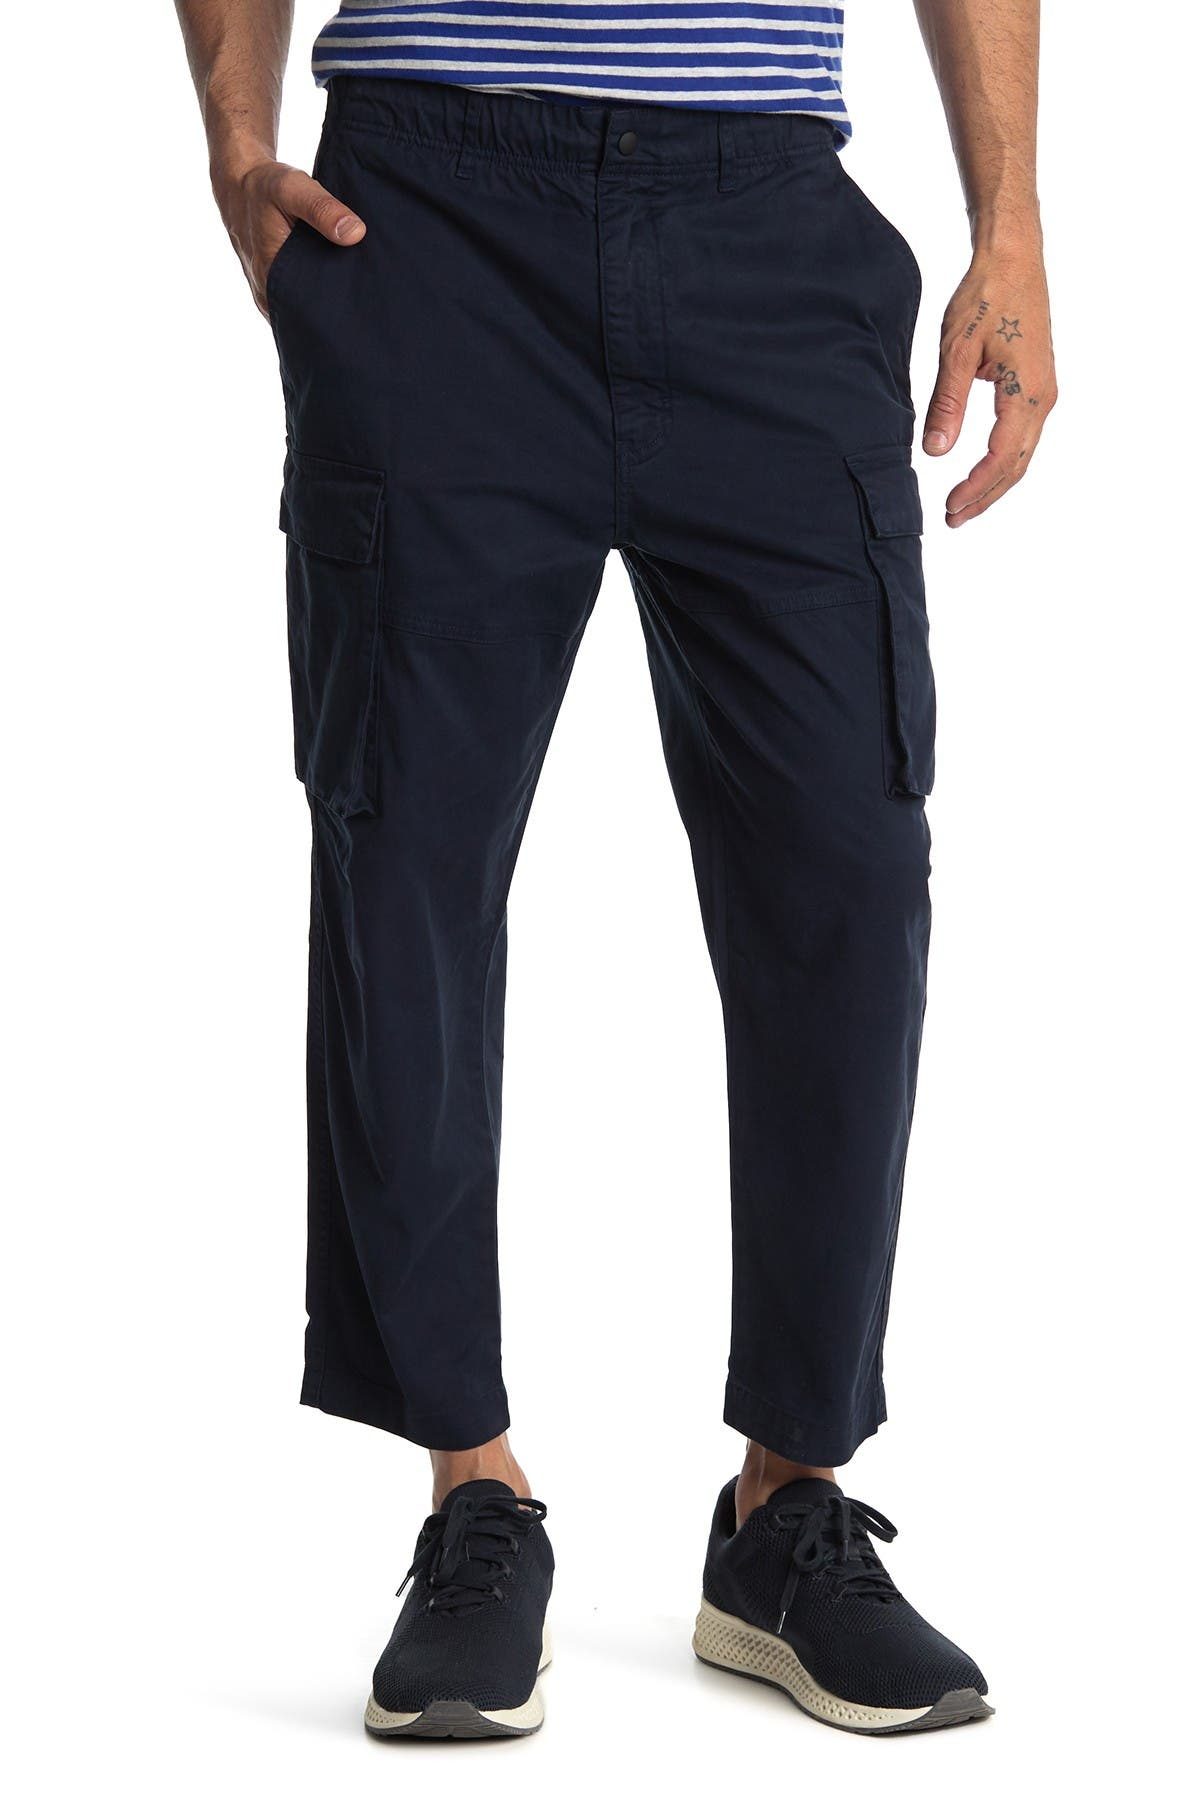 Image of ALEX MILL City Cargo Pants